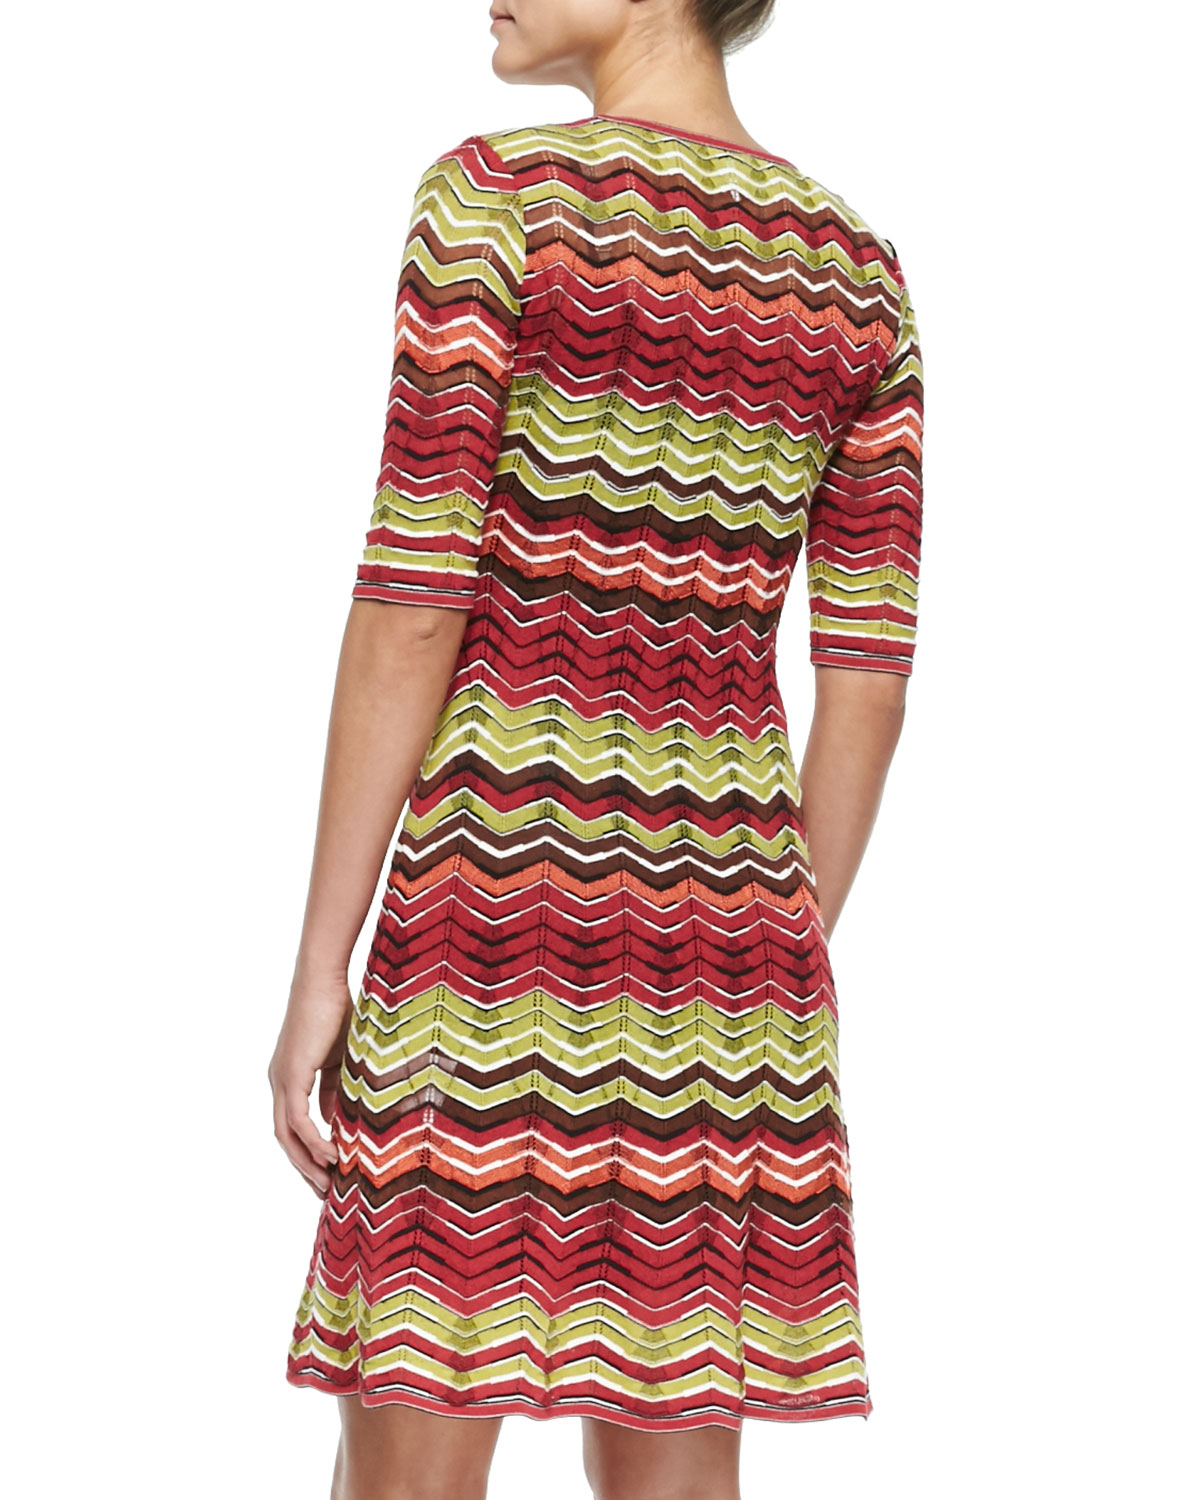 Reliable For Sale Clearance For Sale zig-zag knitted dress - Multicolour Missoni MvWeoU1LY